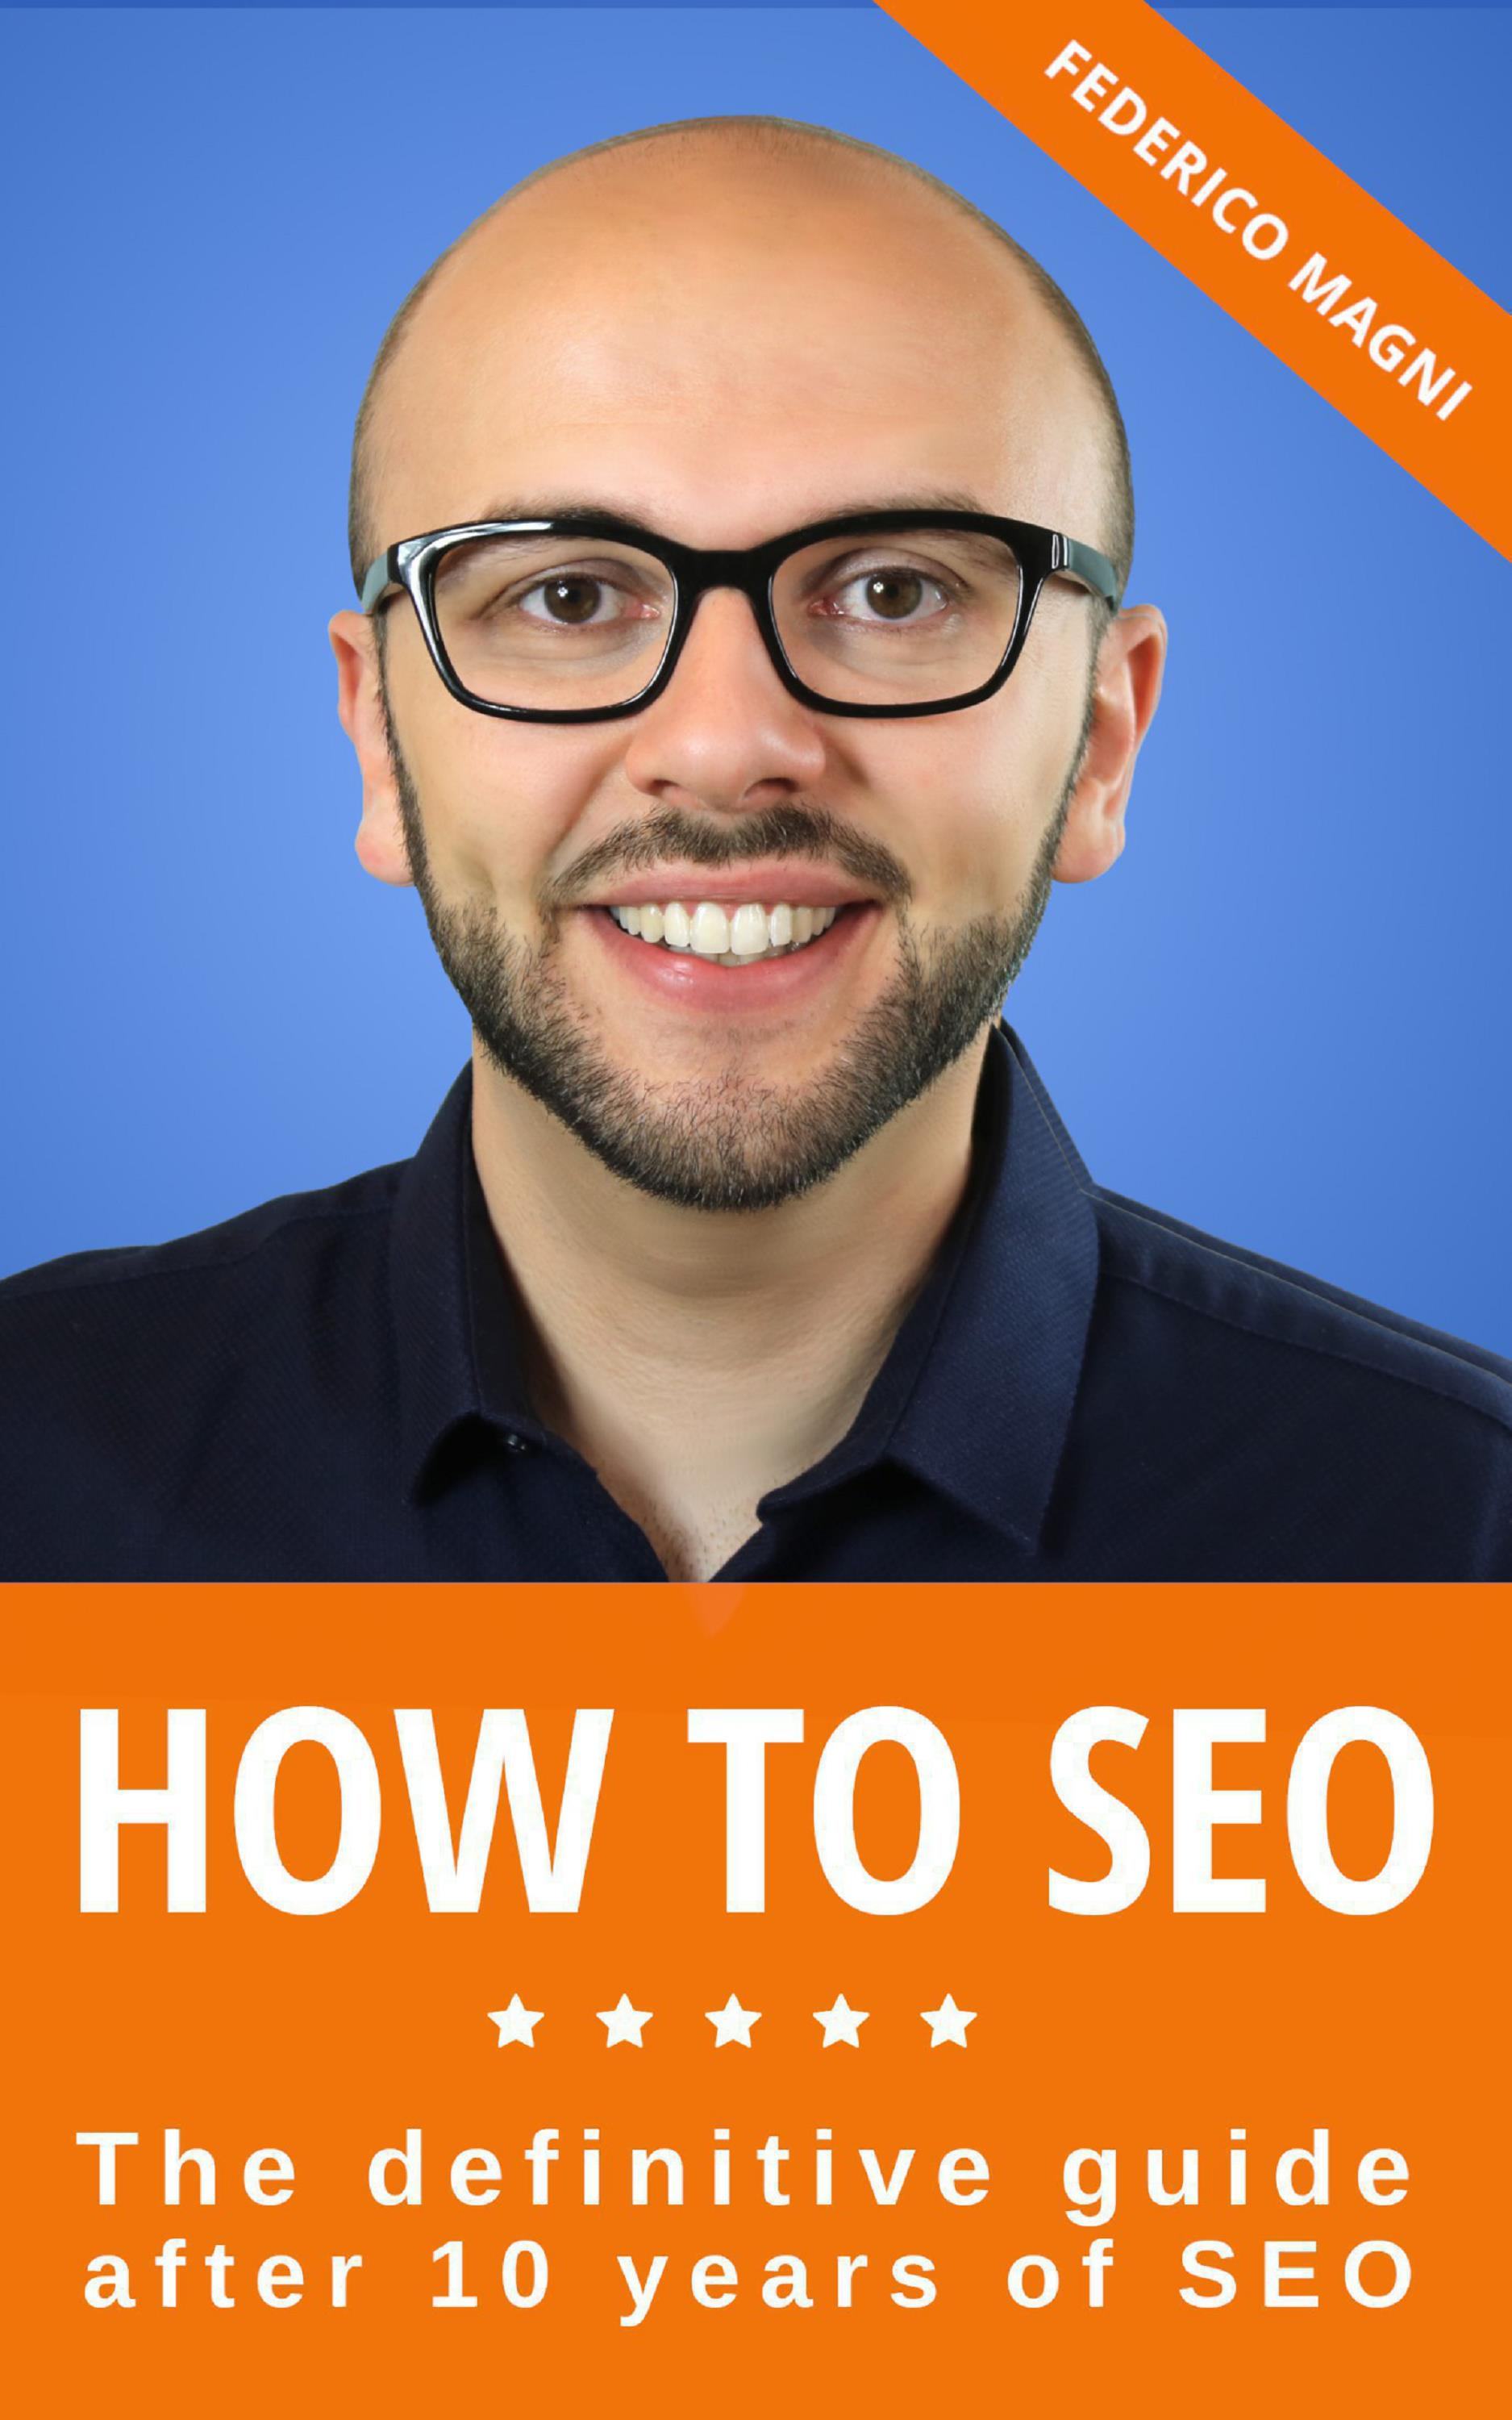 How to SEO - The definitive guide after 10 years of SEO